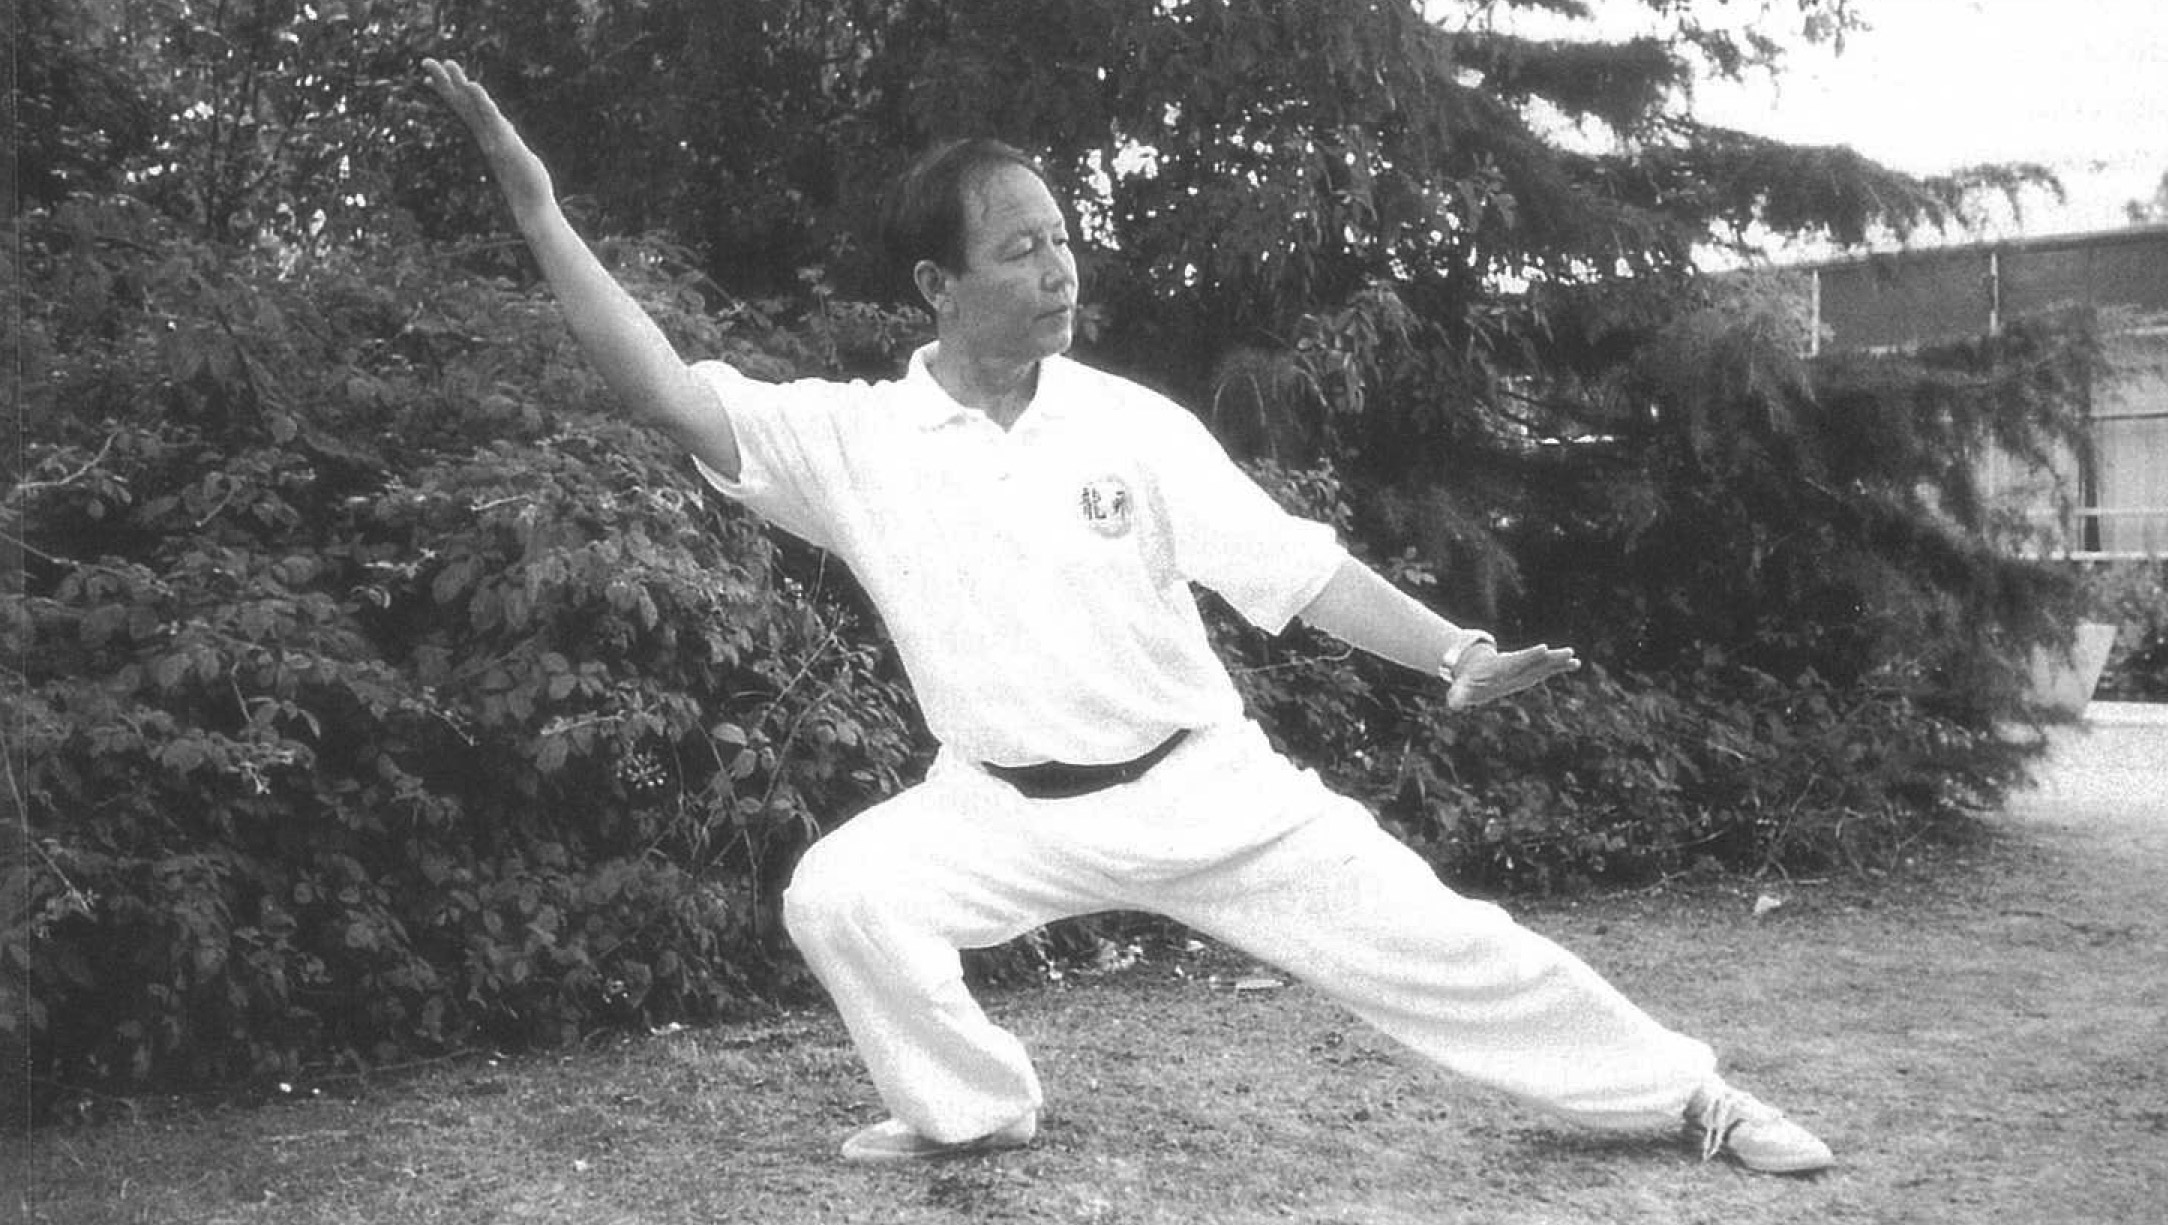 Professor Le Deyin, performing Xie Fei Shi (Oblique flying).